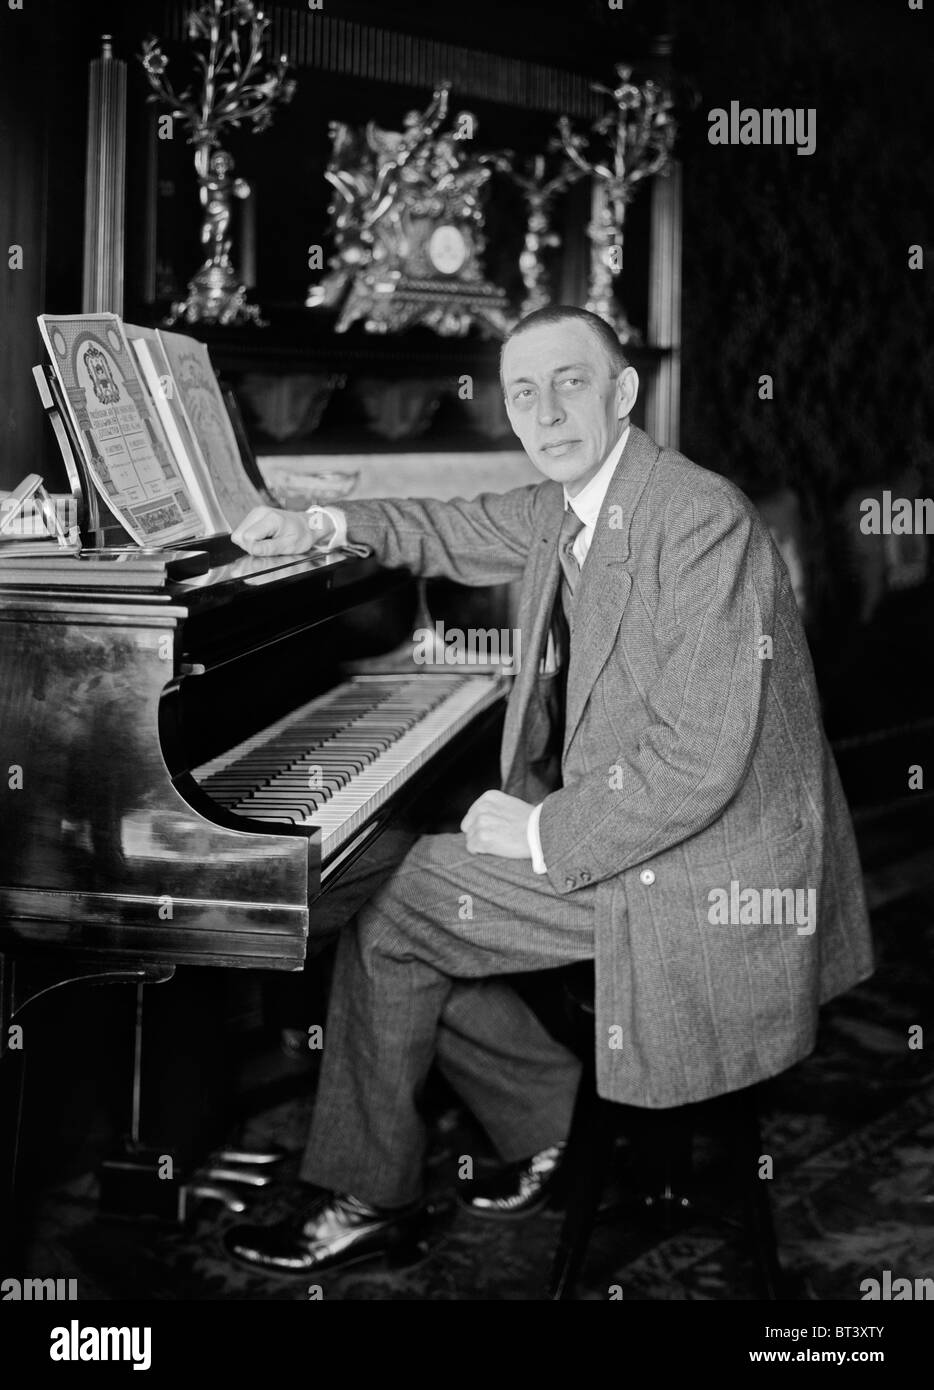 Vintage photo circa 1910s of Russian composer, pianist and conductor Sergei Rachmaninoff (1873 - 1943). - Stock Image